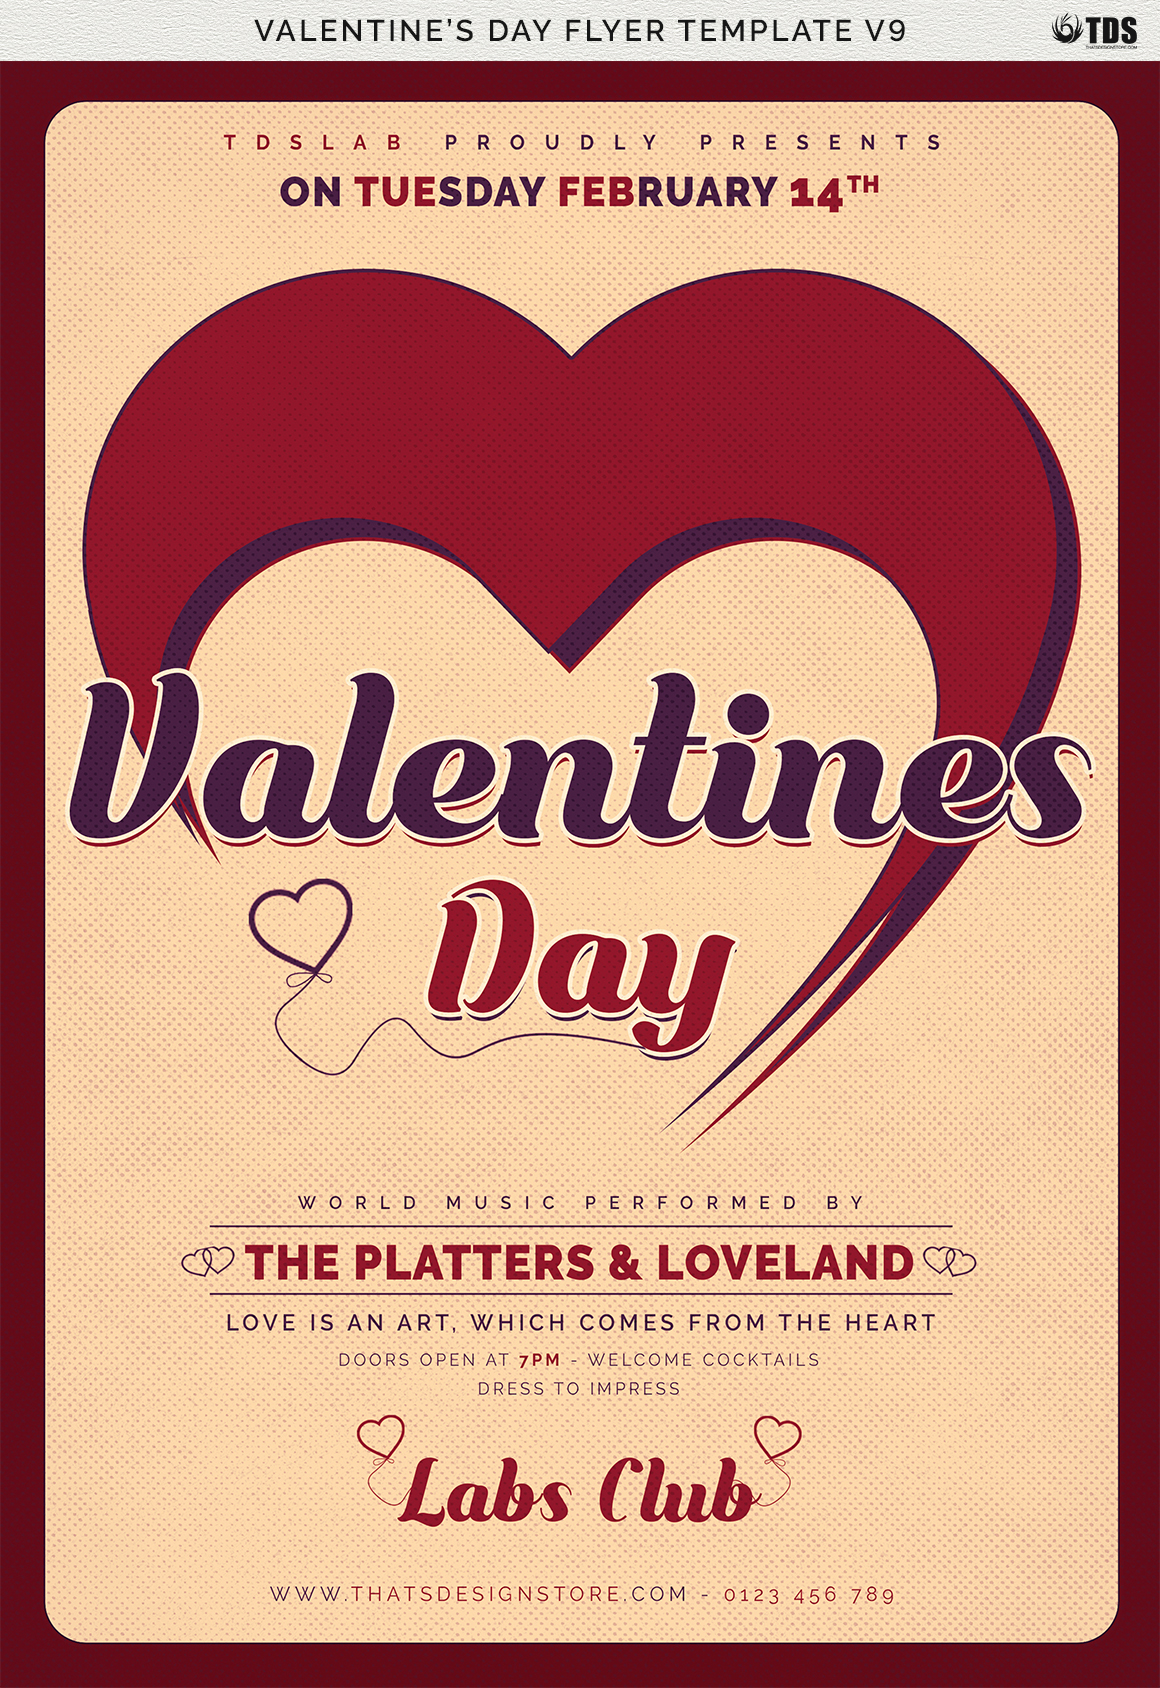 Valentines Day Flyer Template V9 example image 9